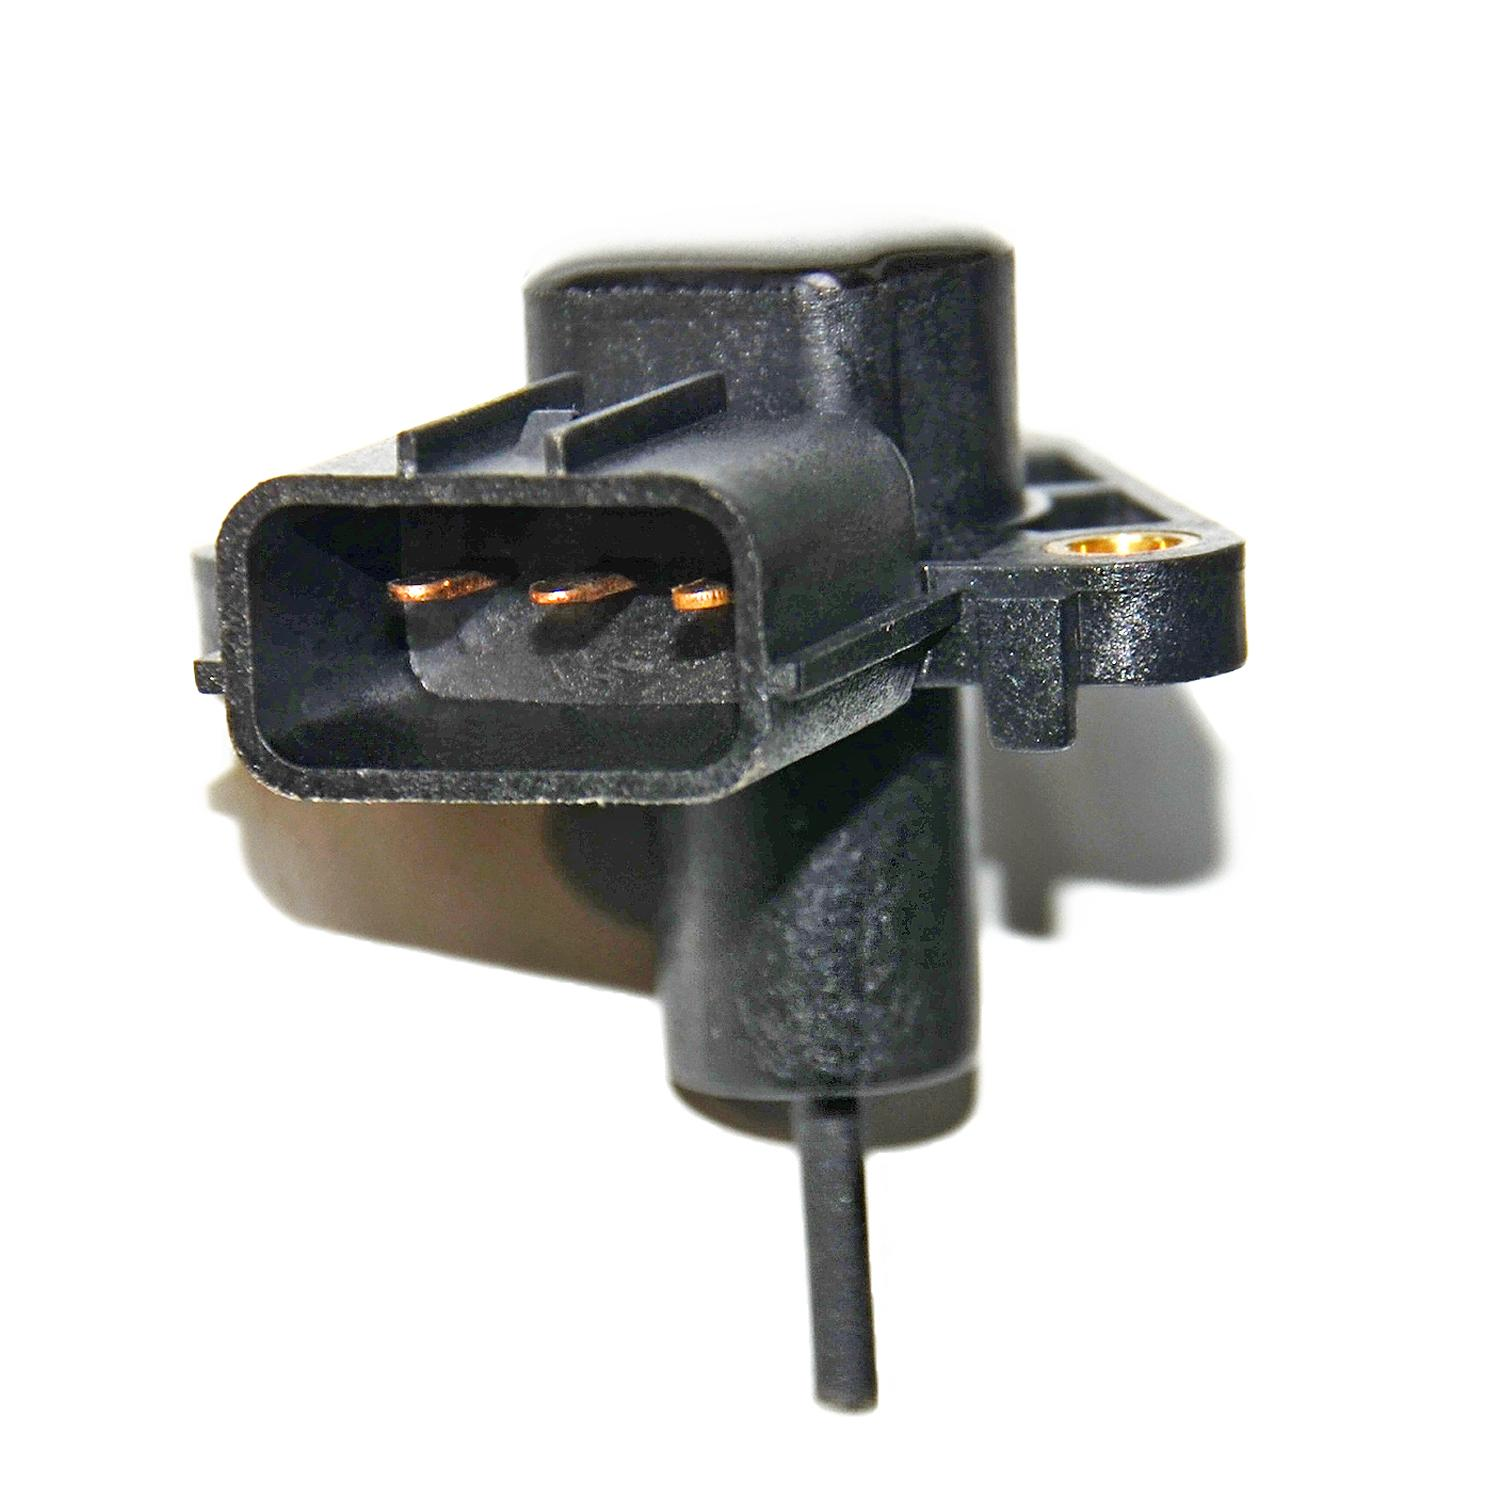 AP02 <font><b>TURBO</b></font> CHARGER ACTUATOR POSITION SENSOR For <font><b>PEUGEOT</b></font> 307 308 <font><b>407</b></font> 508 <font><b>2.0</b></font> <font><b>HDI</b></font> image